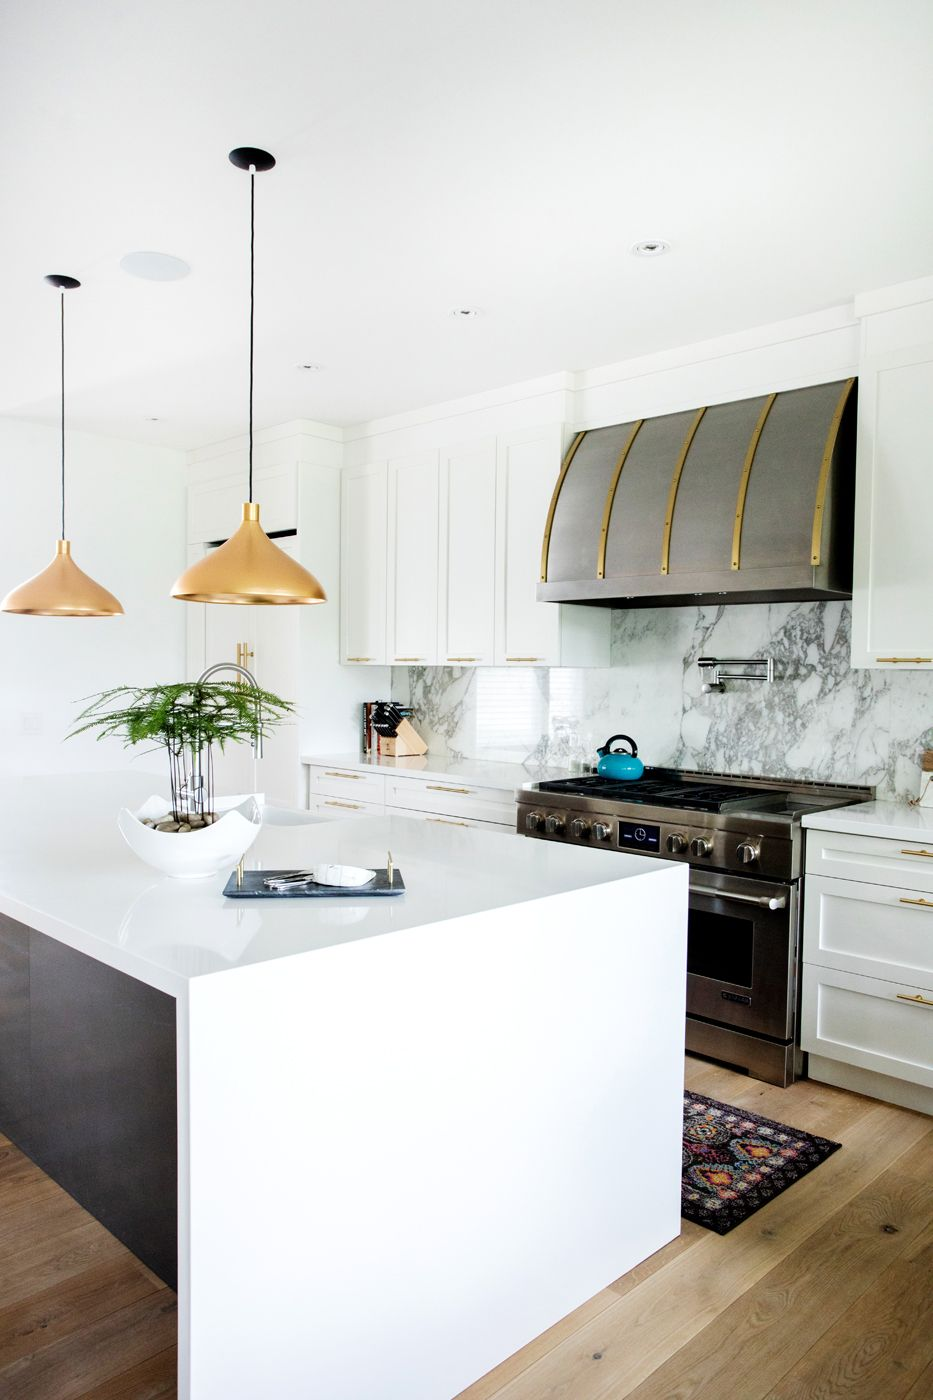 Painted Maple Shaker Style Kitchen Cabinets And Waterfall Island Ora Kitchens And Bath White Modern Kitchen Shaker Style Kitchen Cabinets Kitchen Design